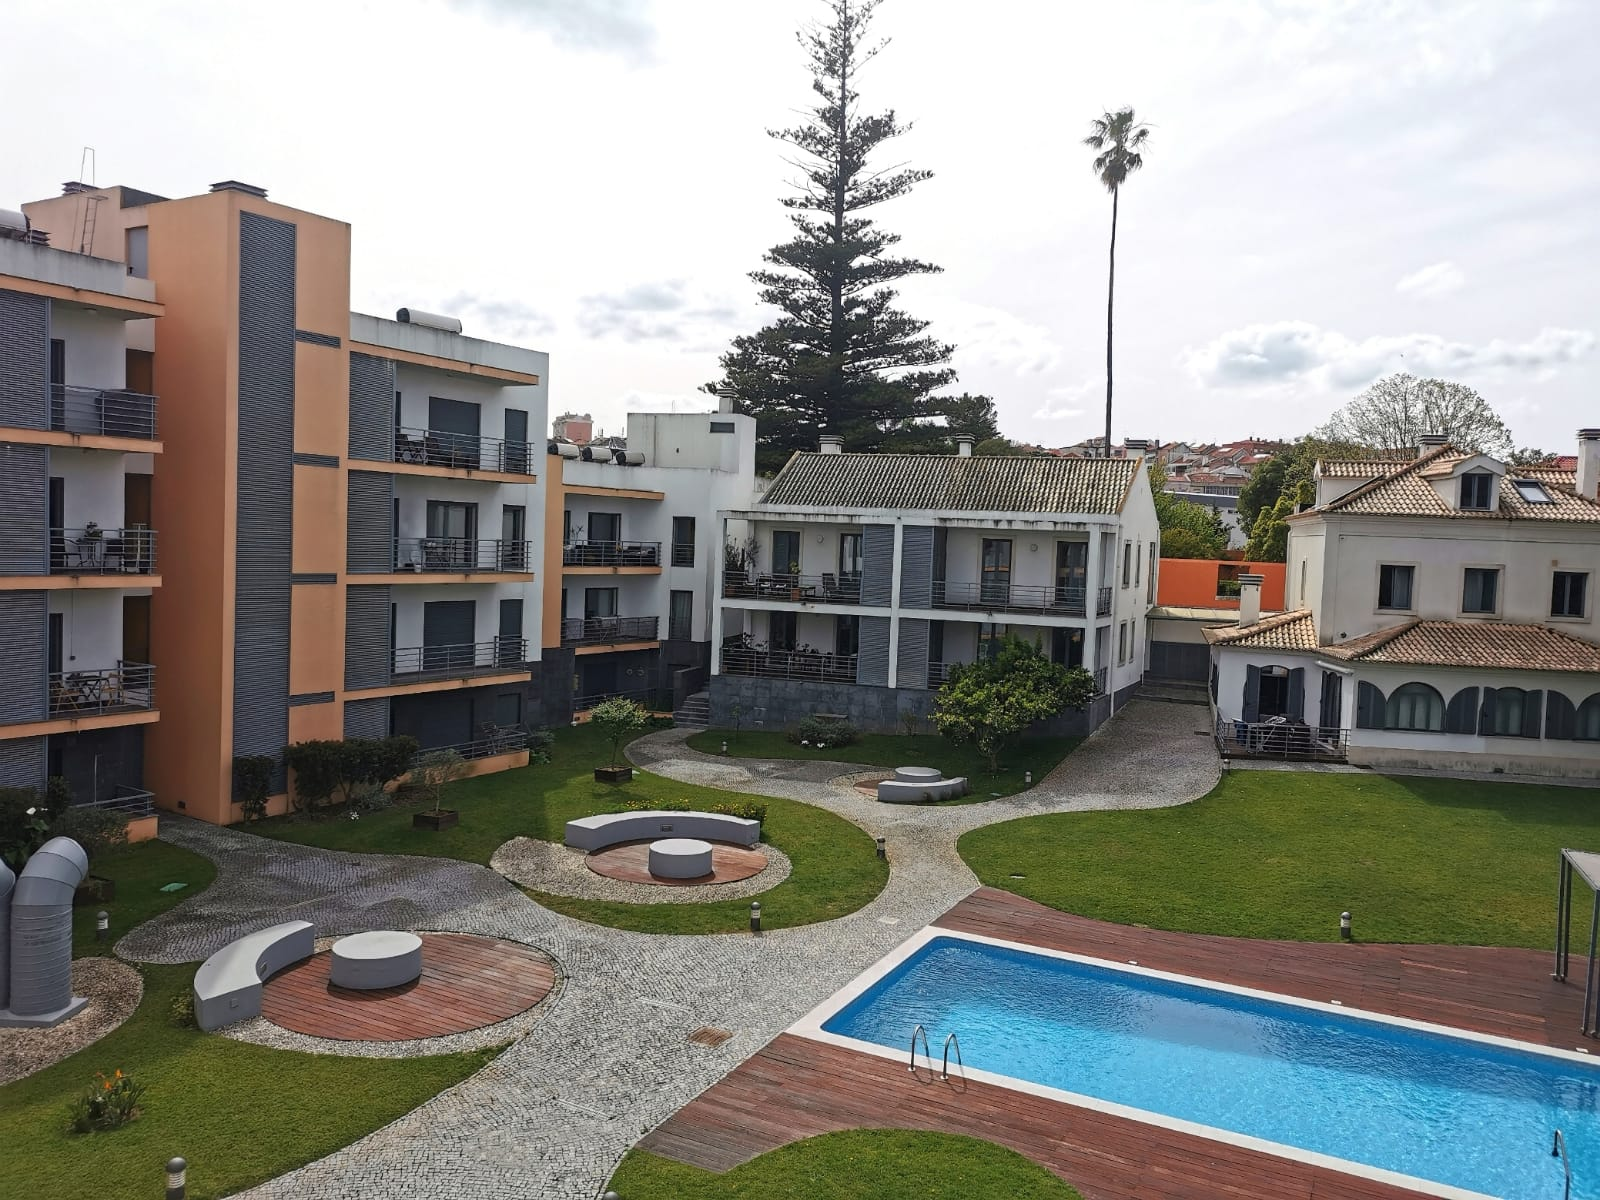 2 Bedroom Apartment in a Private Condominium with Swimming Pool in Benfica